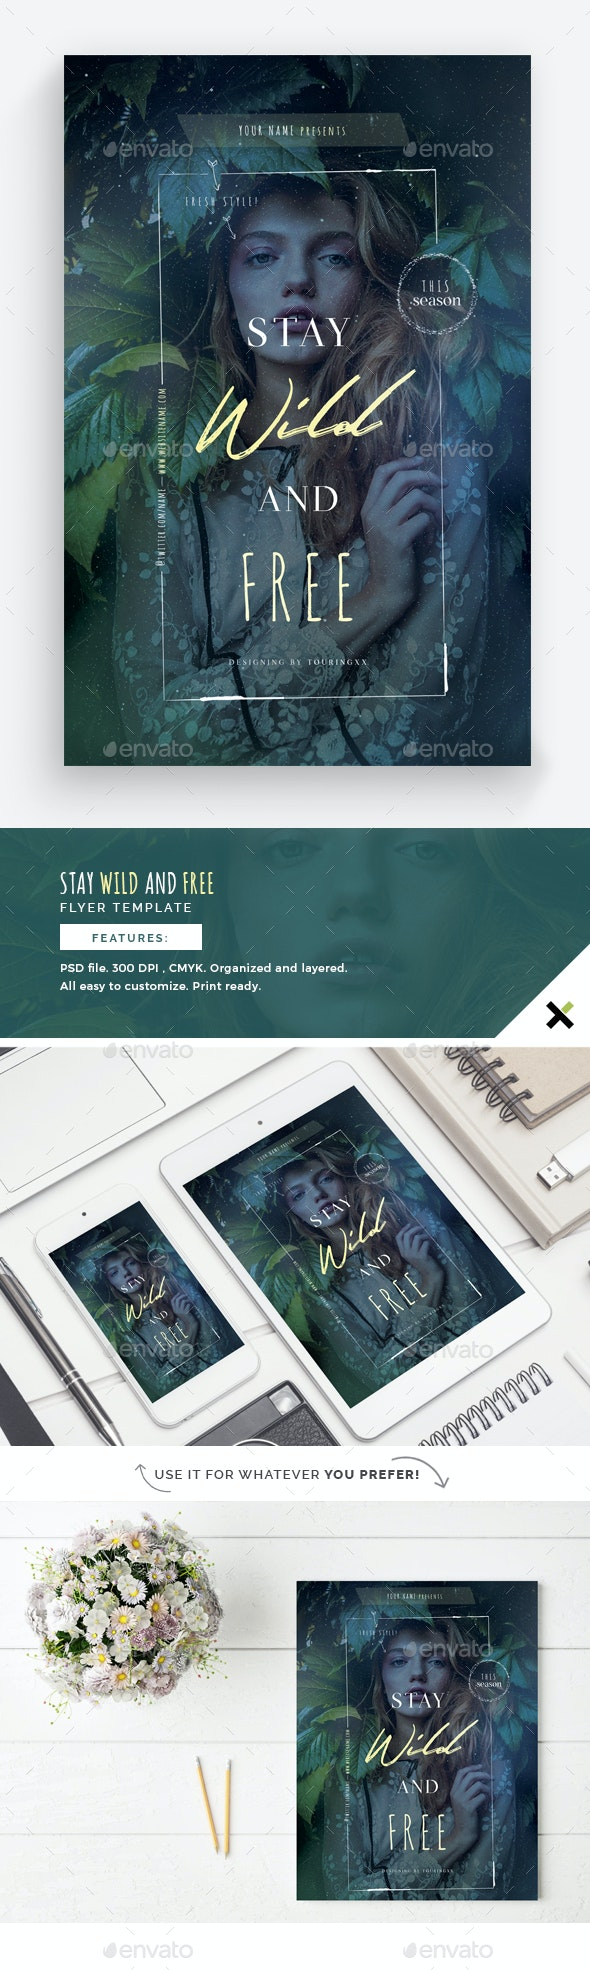 Stay Wild and Free Flyer Template - Flyers Print Templates